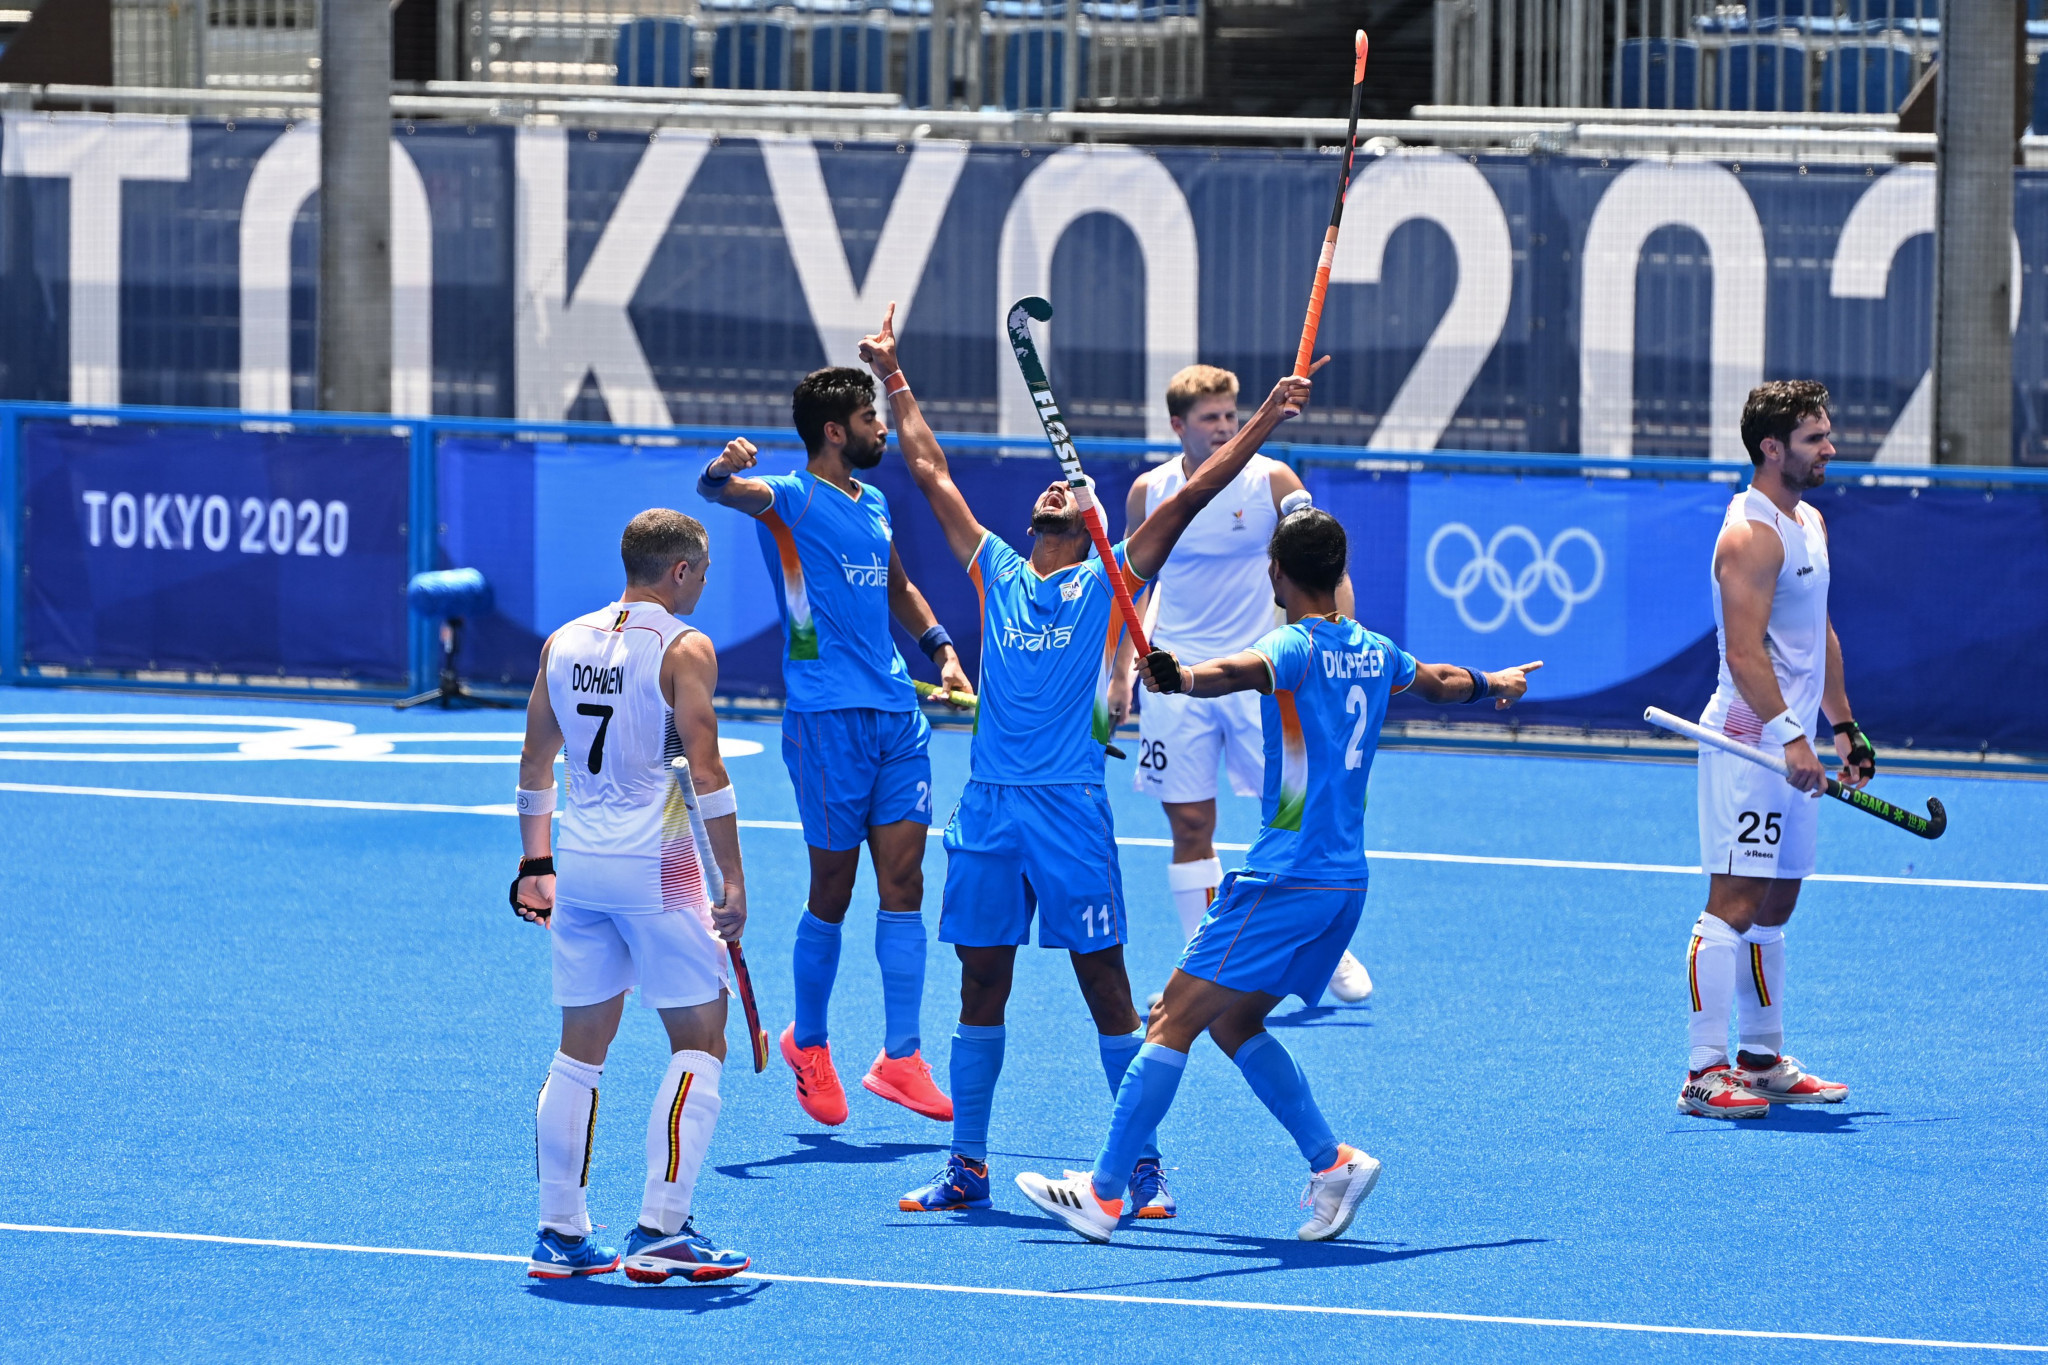 """Chief executive Weil vows FIH will conduct """"thorough analysis"""" of Stars Awards voting process following complaints"""